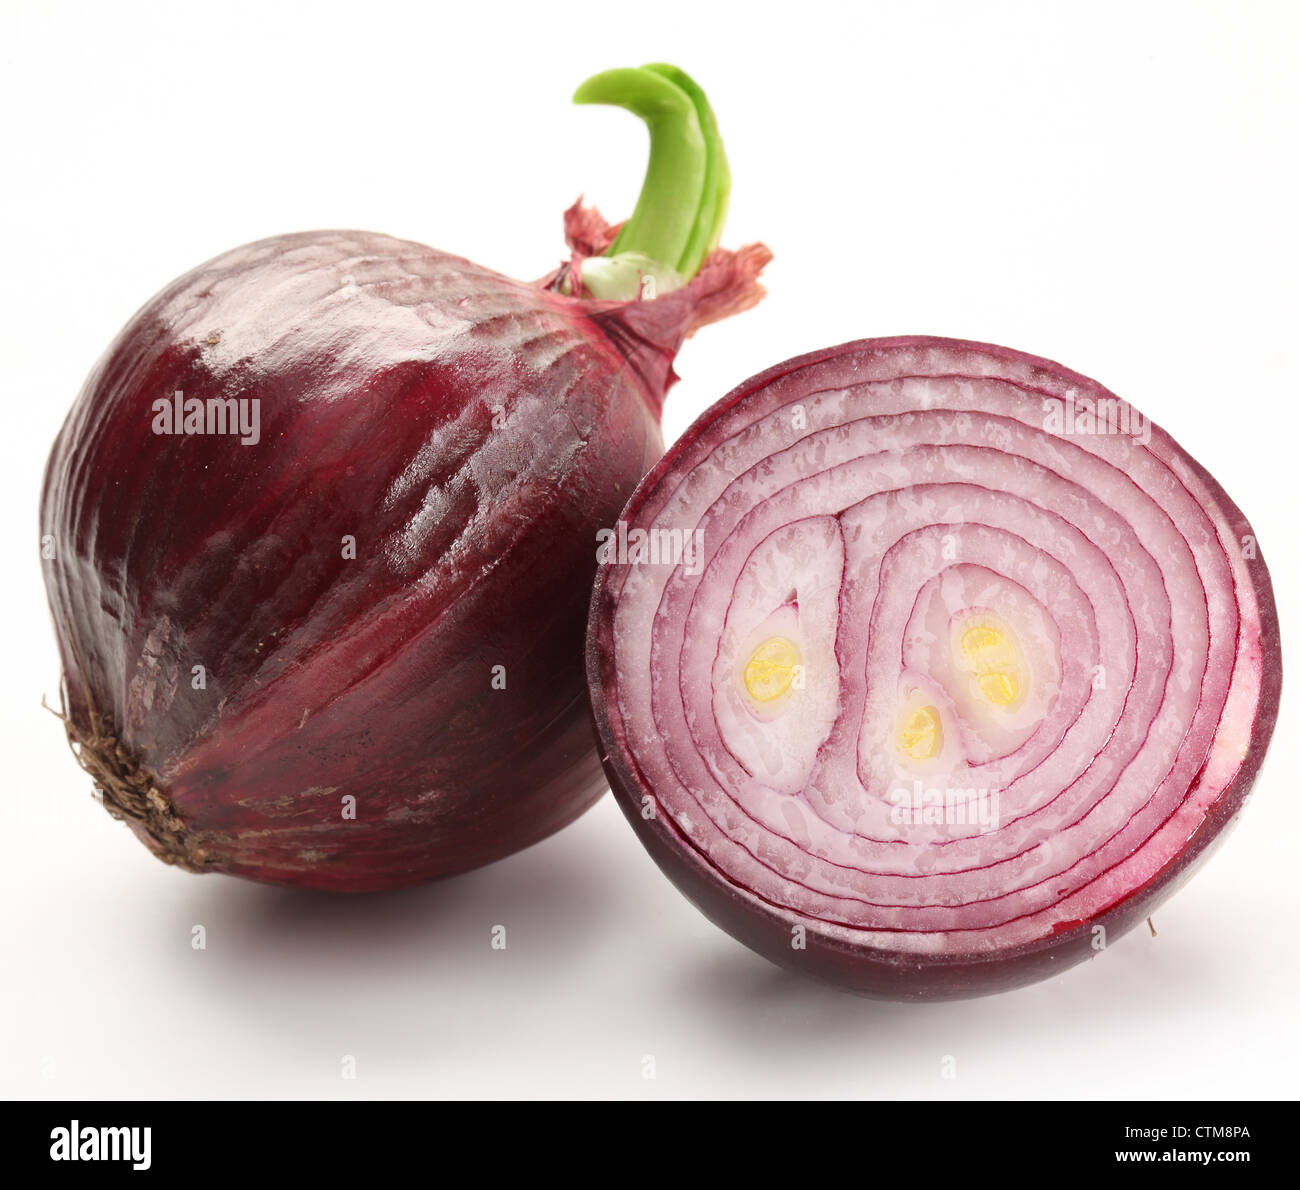 Bulbs of red onion with green leaves on a white background. - Stock Image